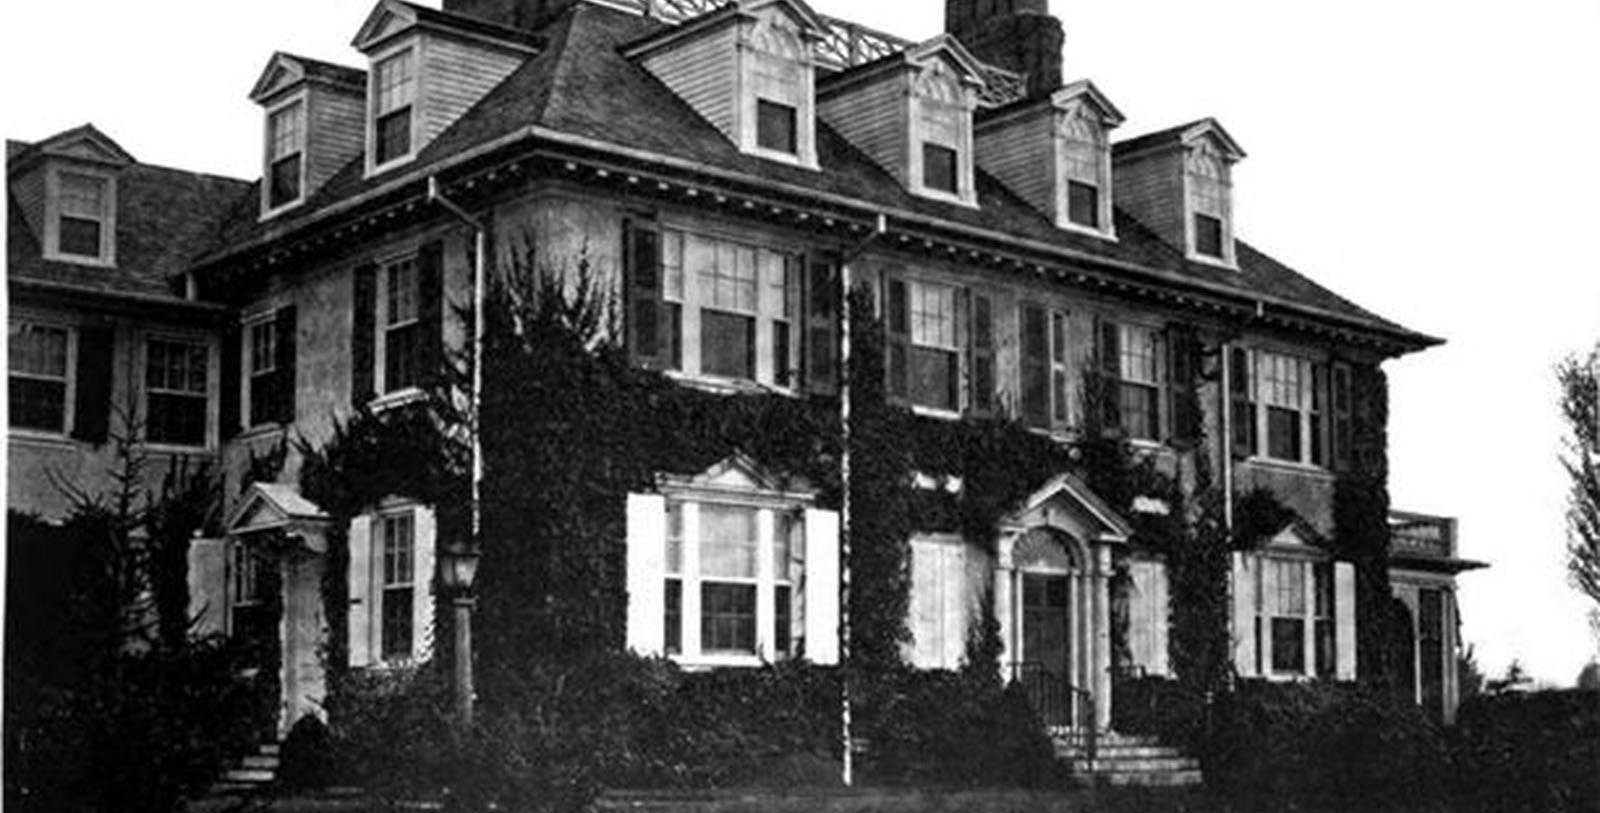 Image of Historic Hotel Exterior of Airlie, 1899, Member of Historic Hotels of America, in Warrenton, Virginia, Discover